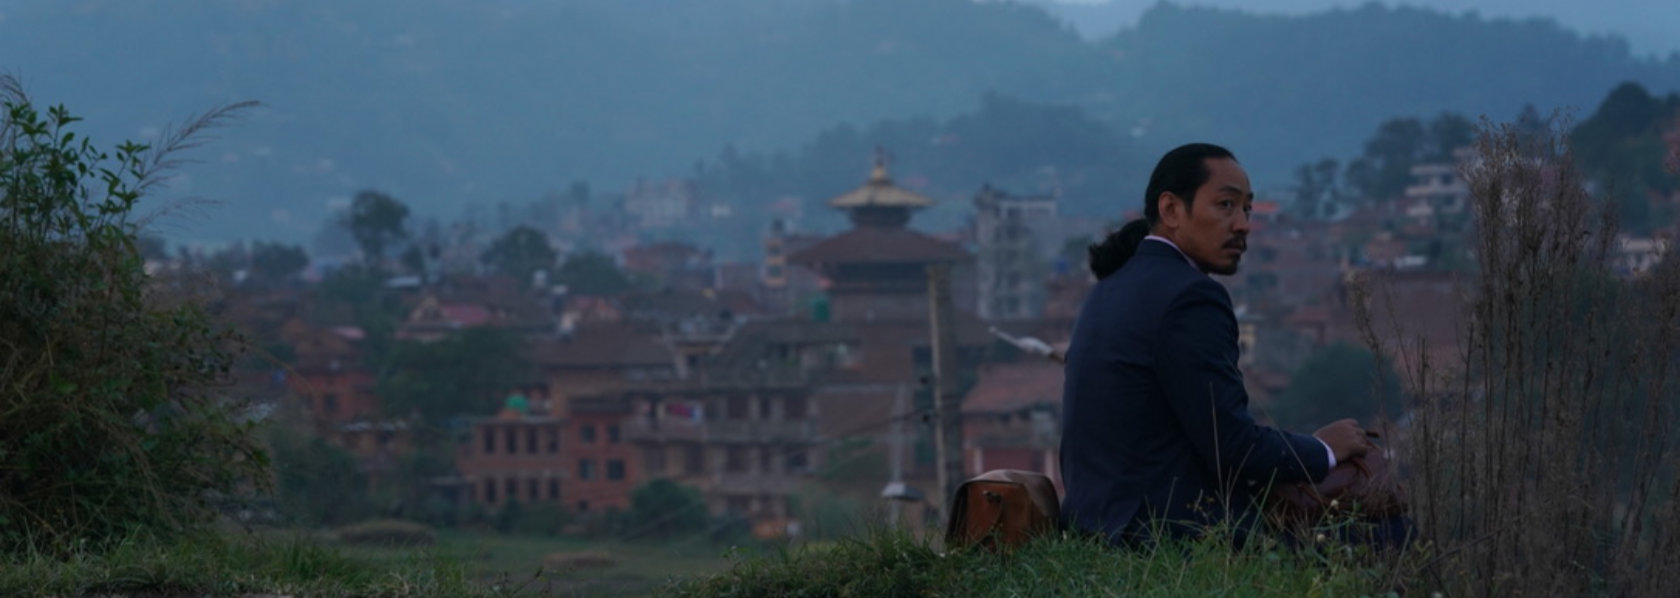 Man with ponytail sits on hill overlooking mountaineous town - Looking for a Lady With Fangs and a Moustache - THIS Buddhist Film Festival